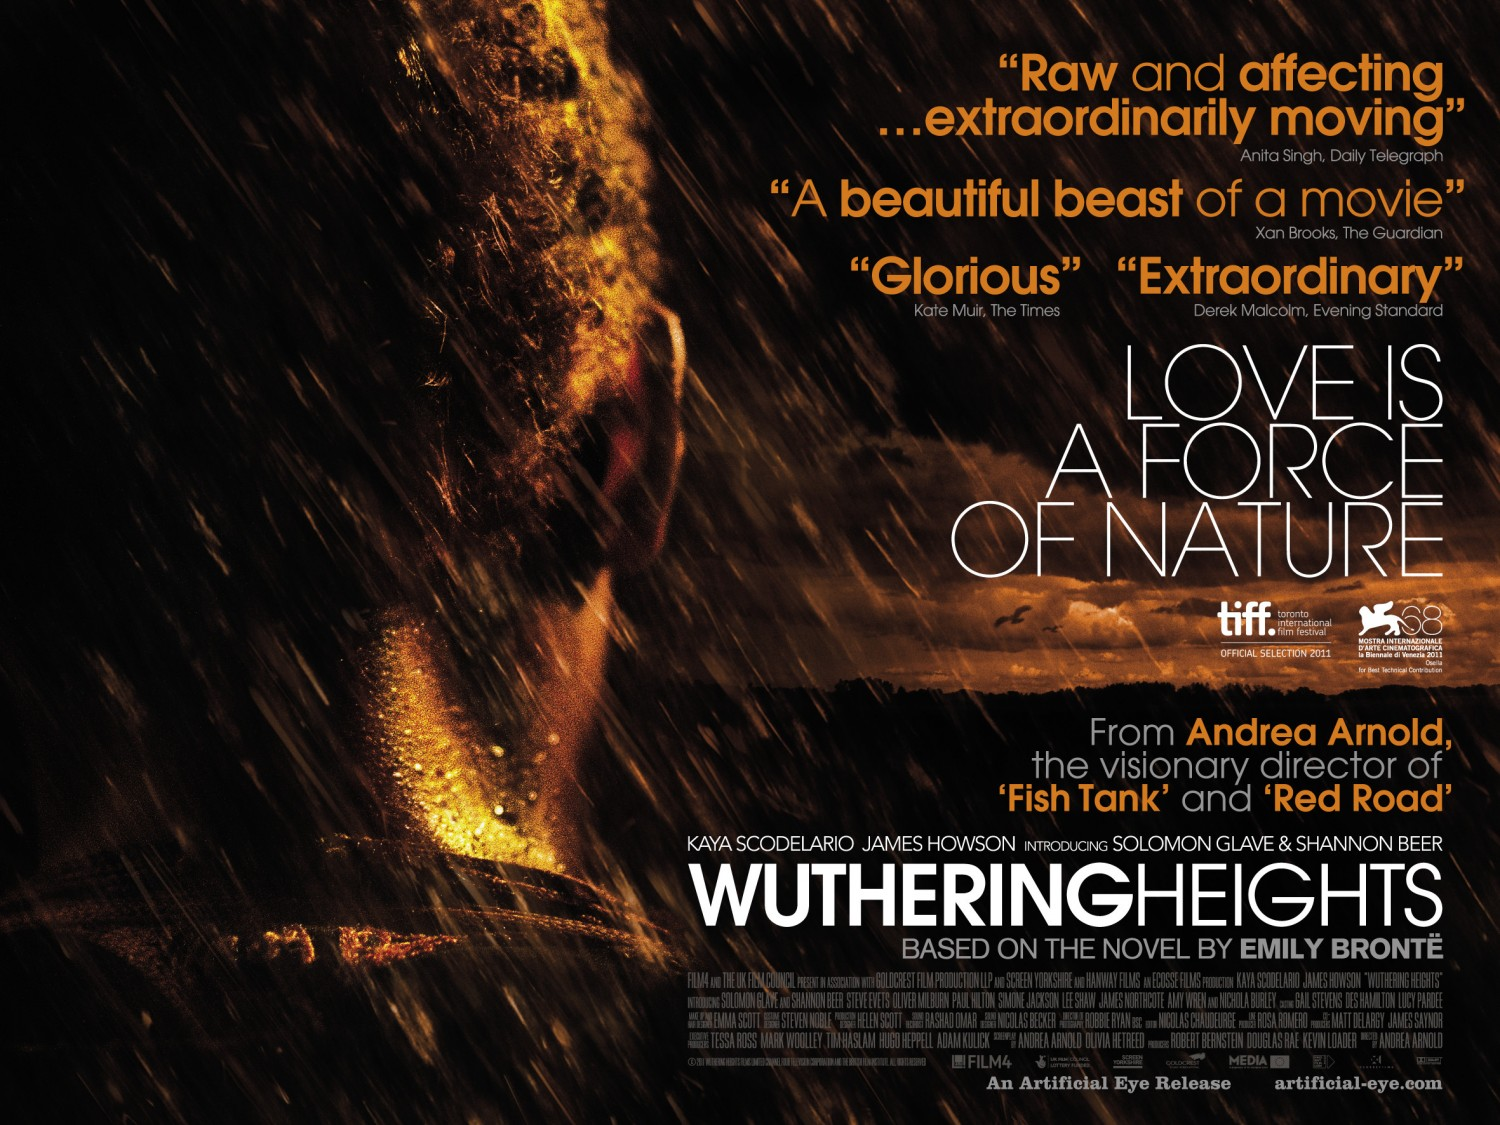 Wuthering Heights UK Theatrical Poster